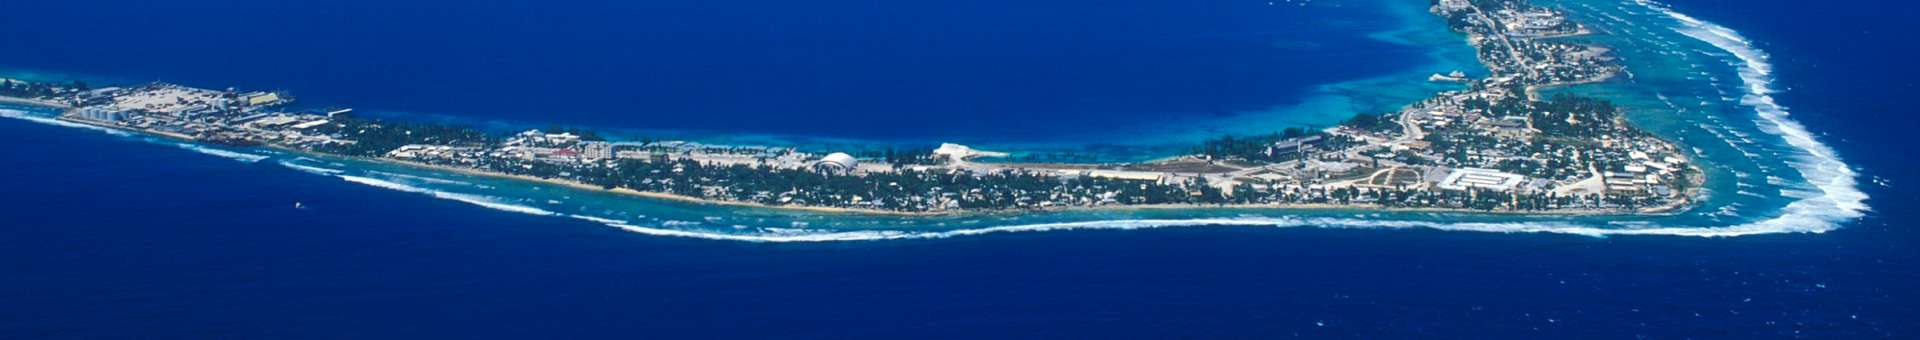 Search Whois information of domain names in Marshall Islands